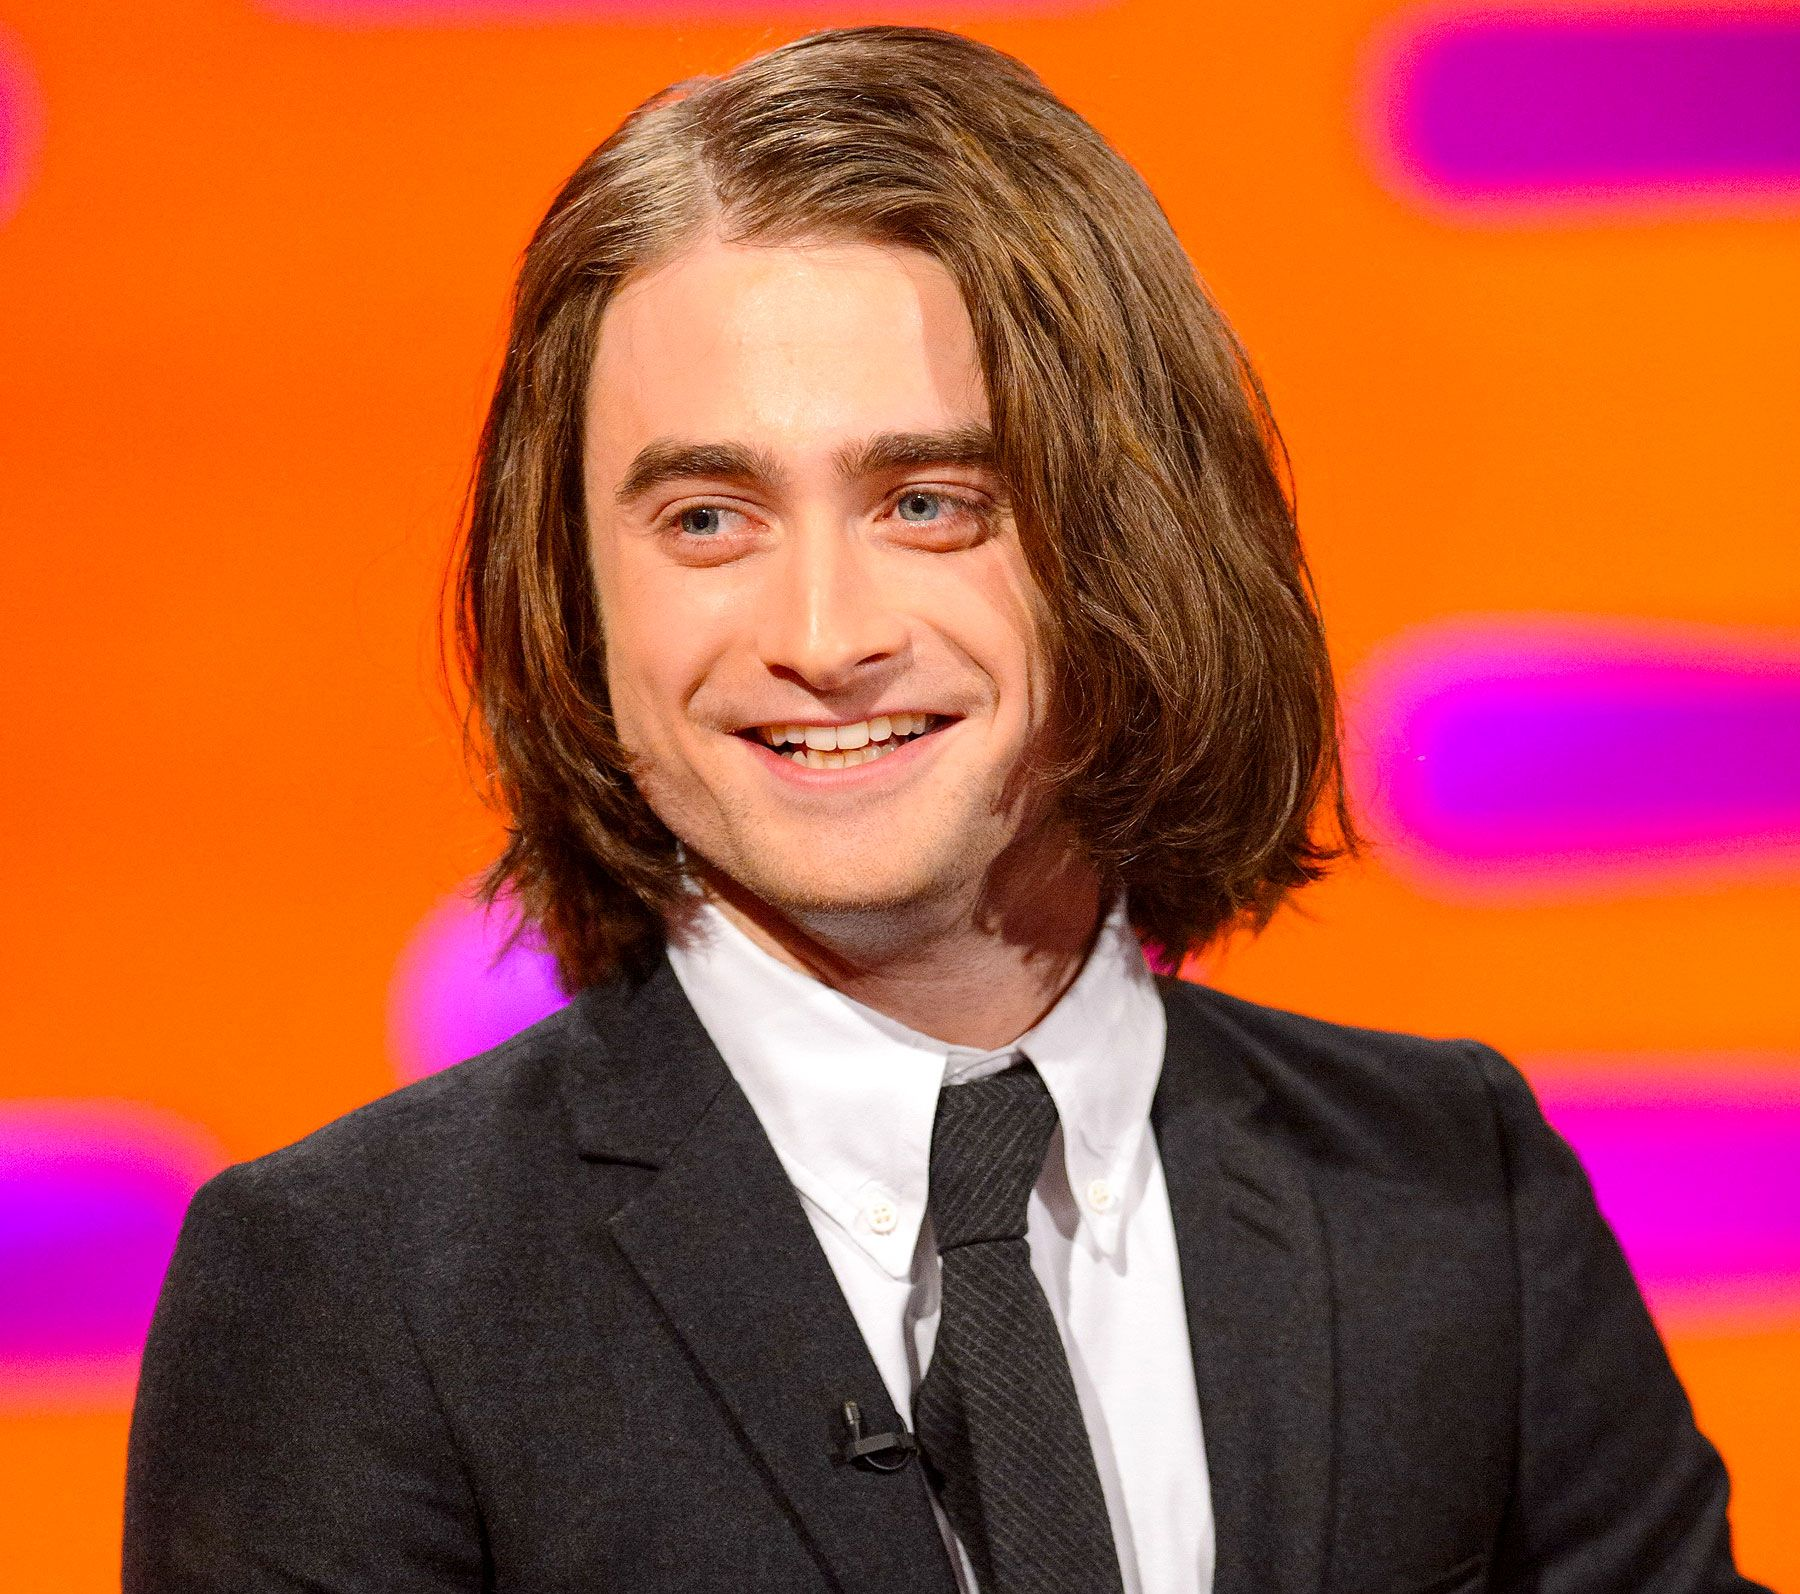 Daniel Radcliffe Google Search Worst Celebrities Celebrity Hairstyles Cool Hairstyles